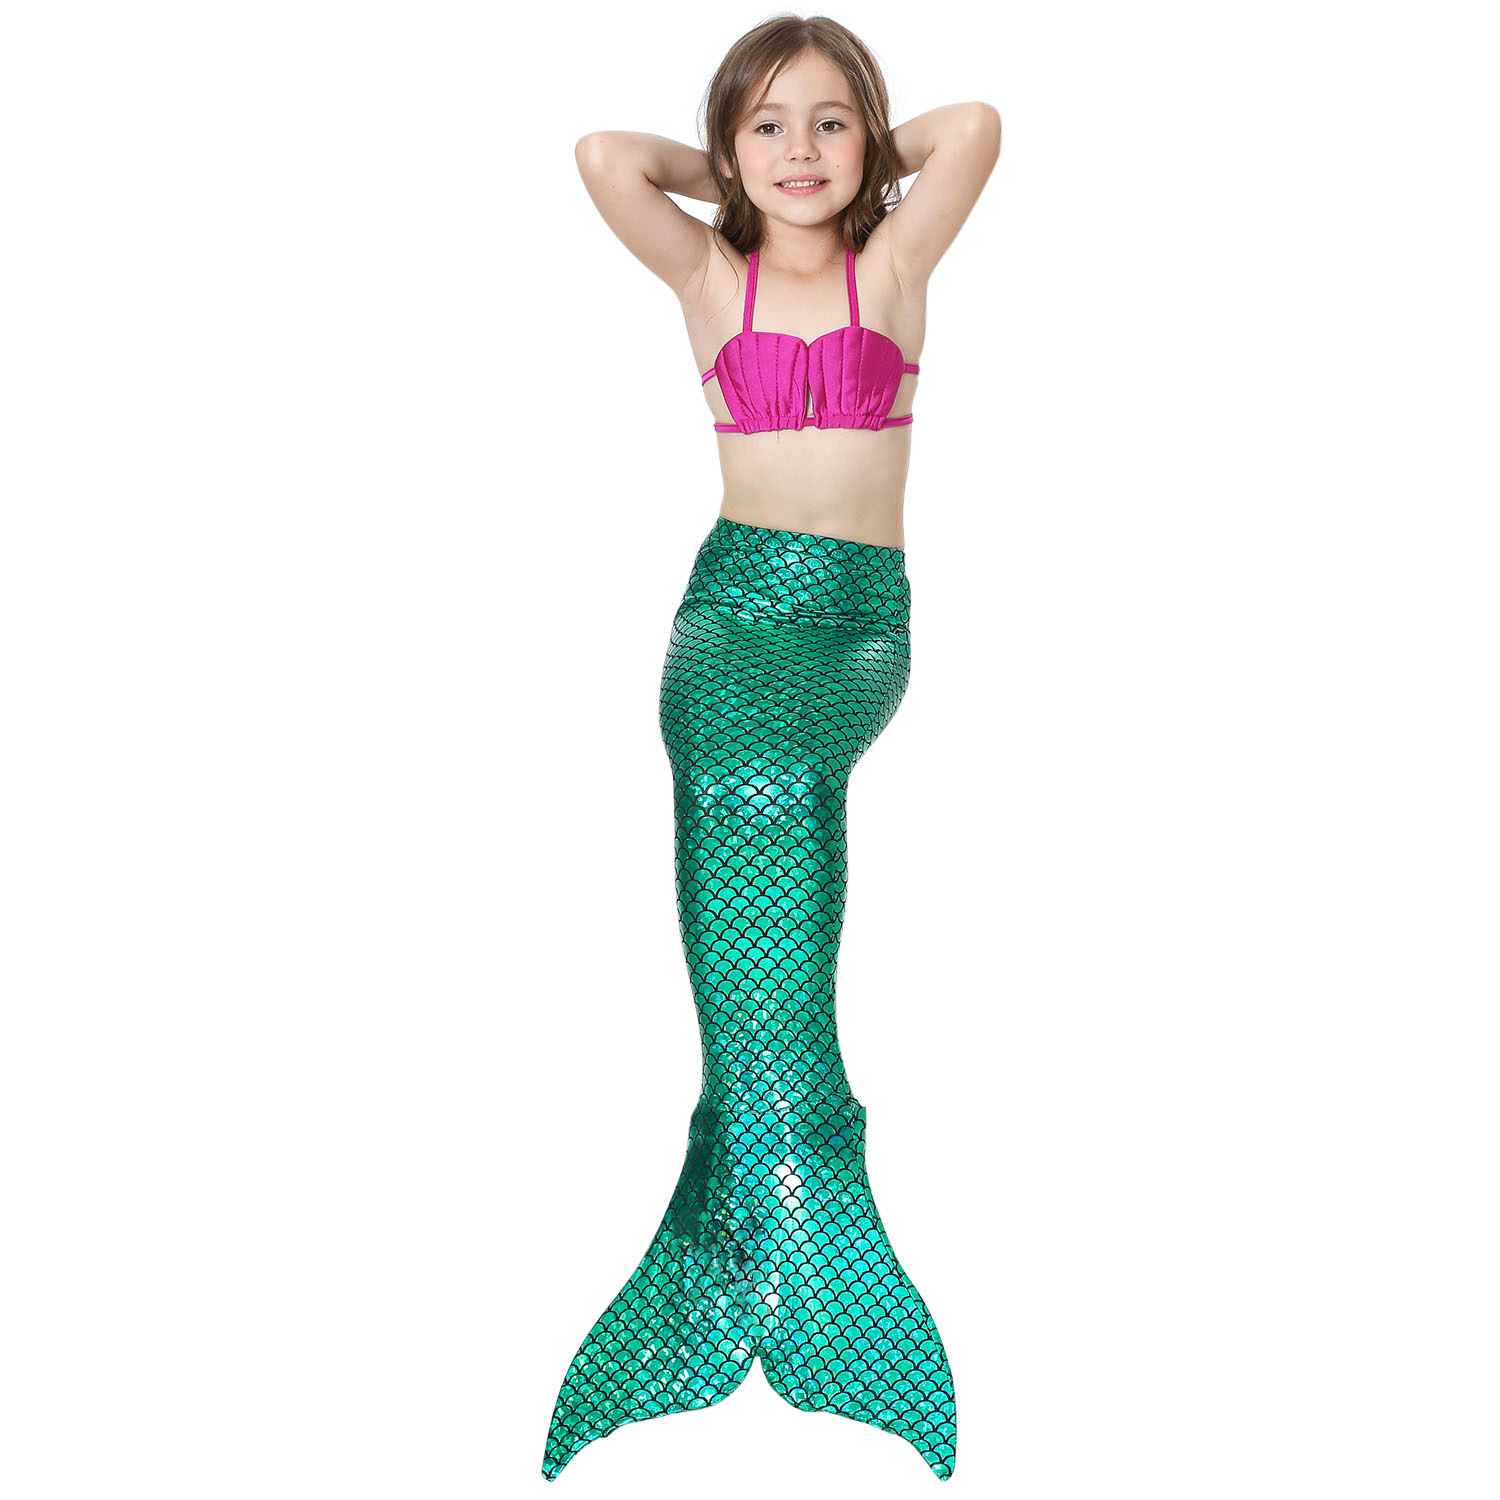 Little Mermaid Tails for Swimming Costume Mermaid Tail Cosplay Girls Swimsuit Kids Children Swimmable suit Monofin 6